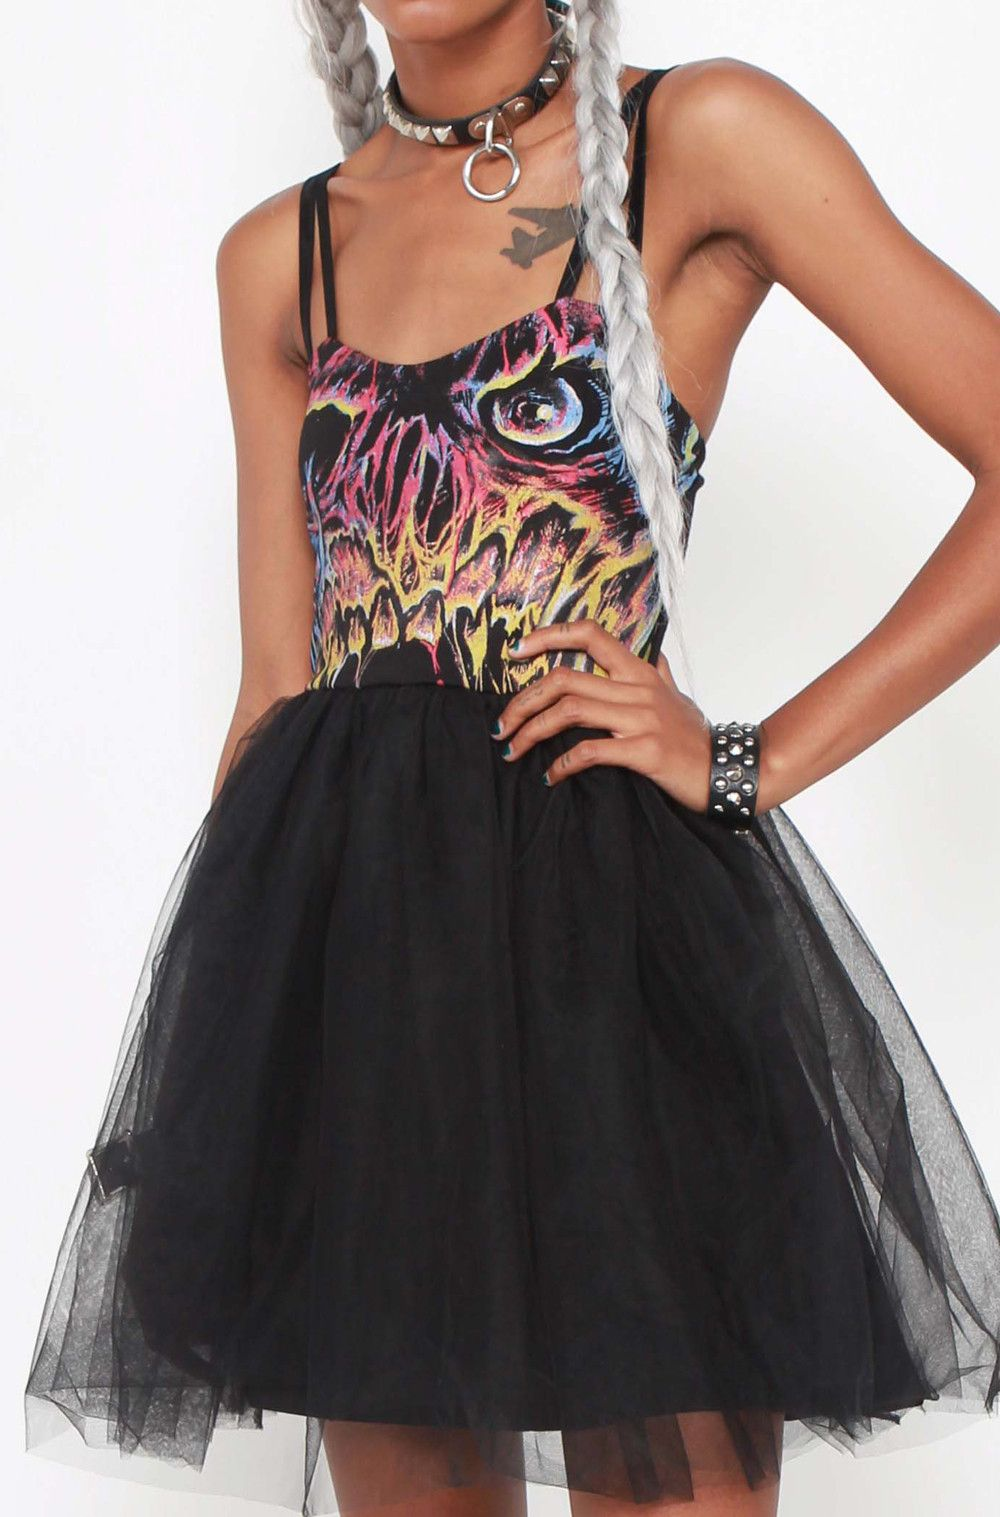 Carl party dress just fashion pinterest clothes and fashion